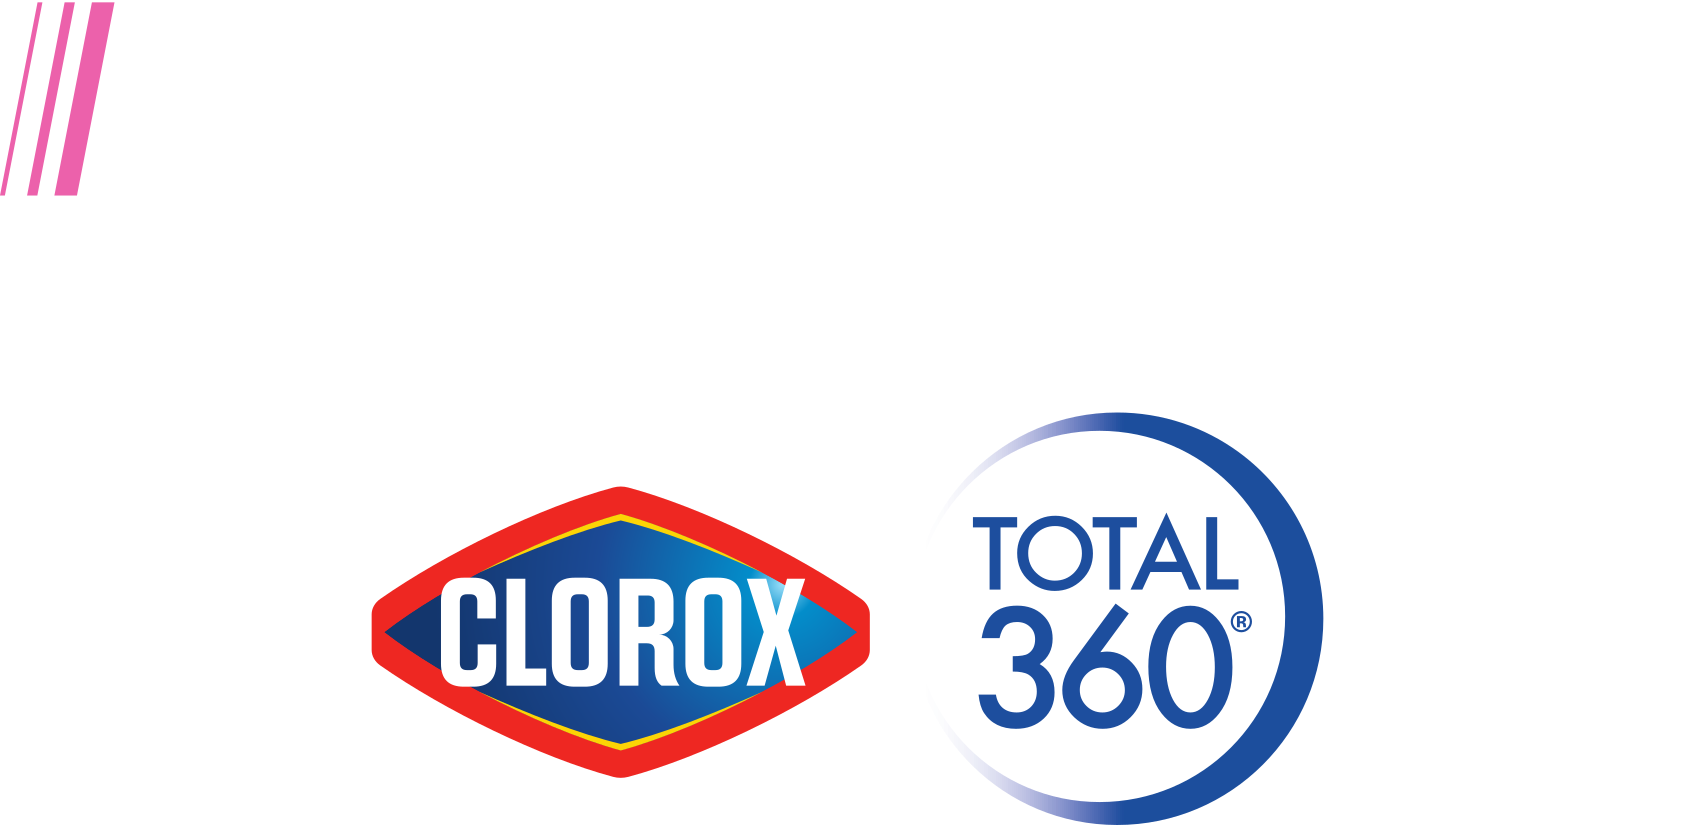 PrecisionCare powered by Clorox<sup>®</sup> Total 360<sup>®</sup> logo